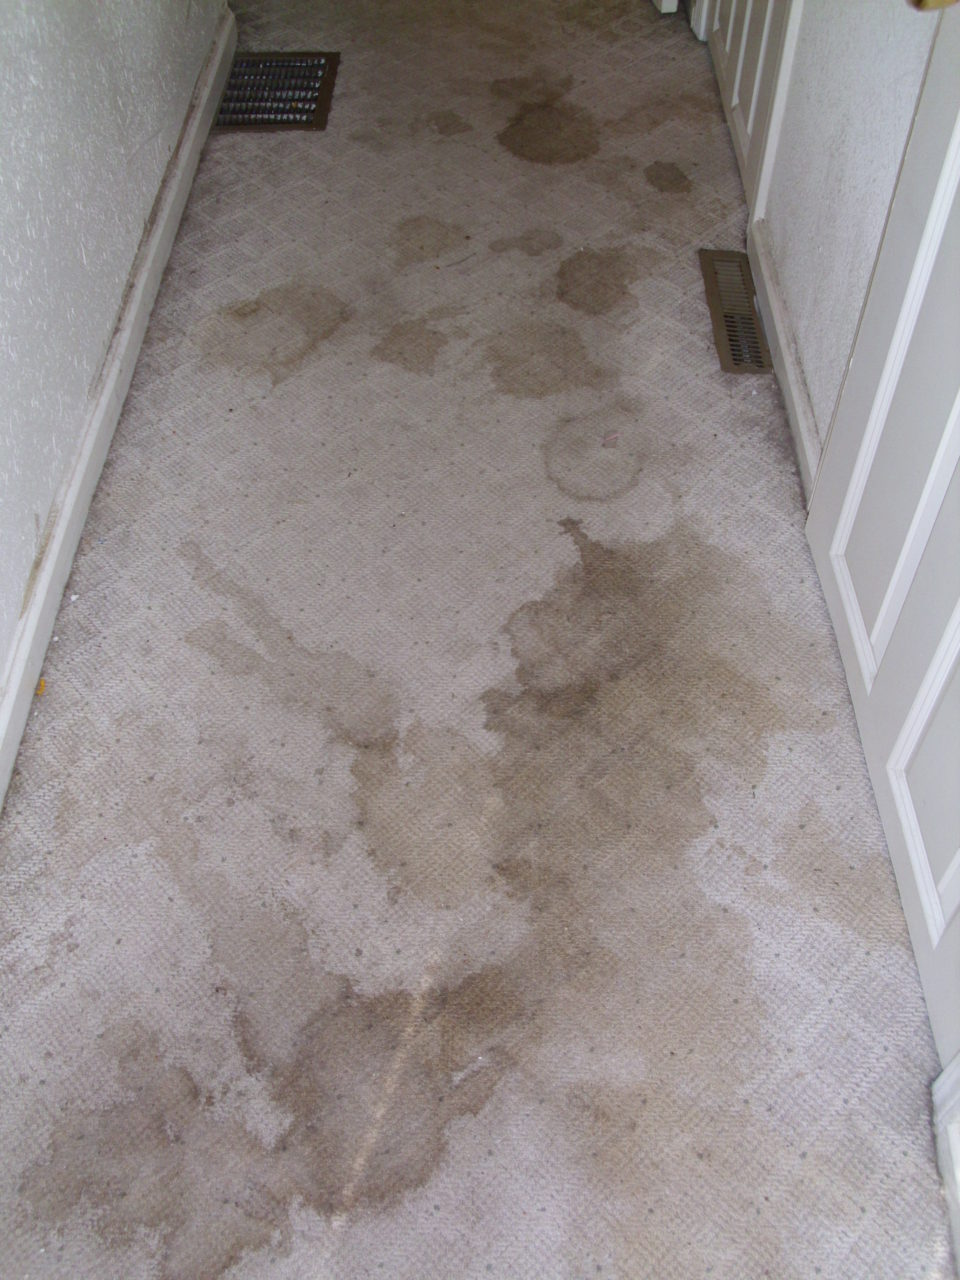 hallway with grungy stained carpet